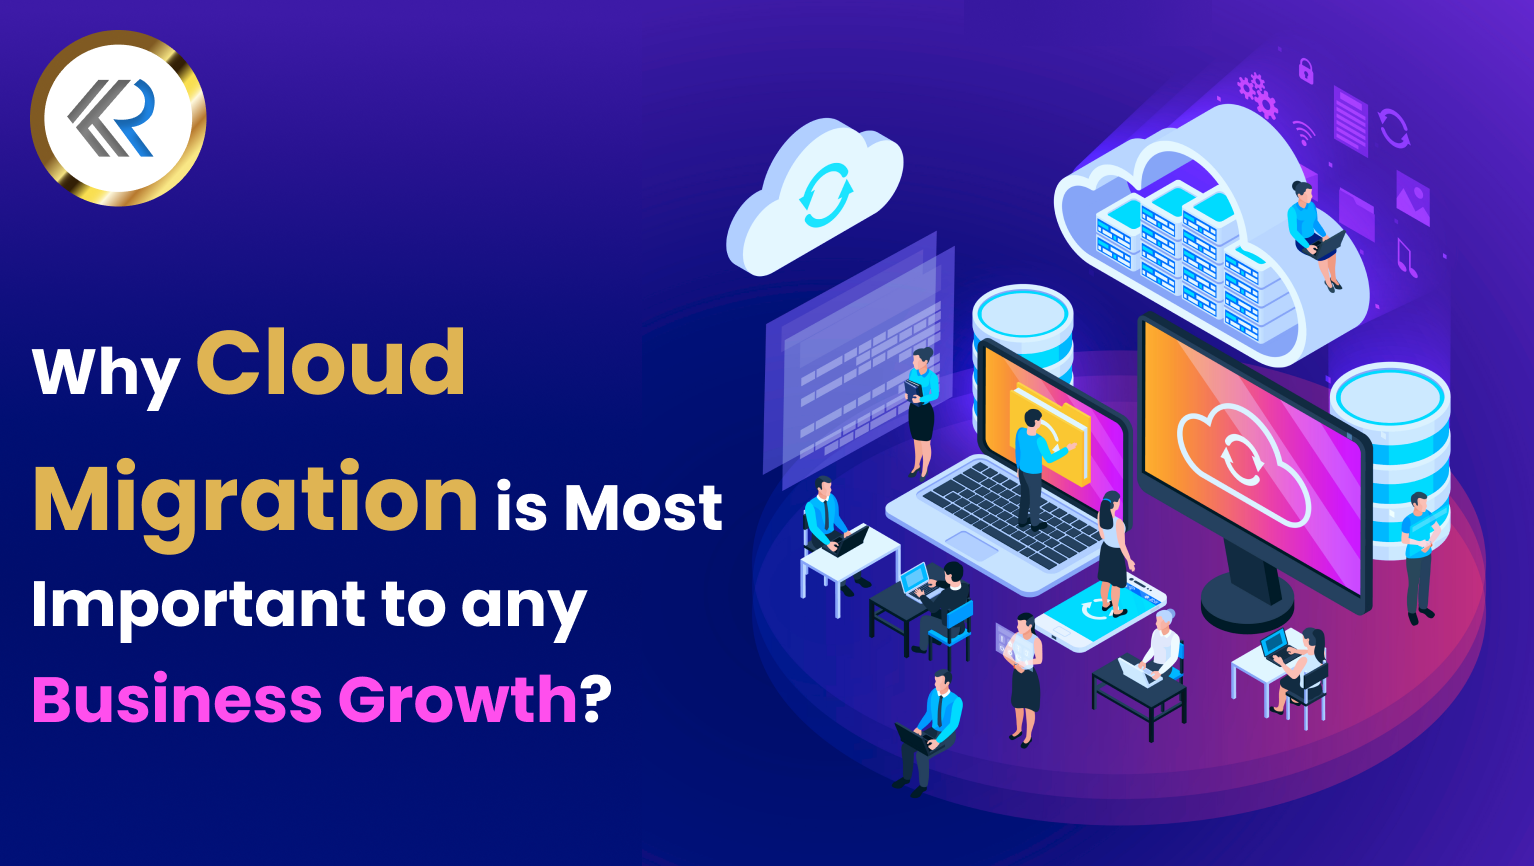 Why Cloud Migration is Most Important for a Business Growth